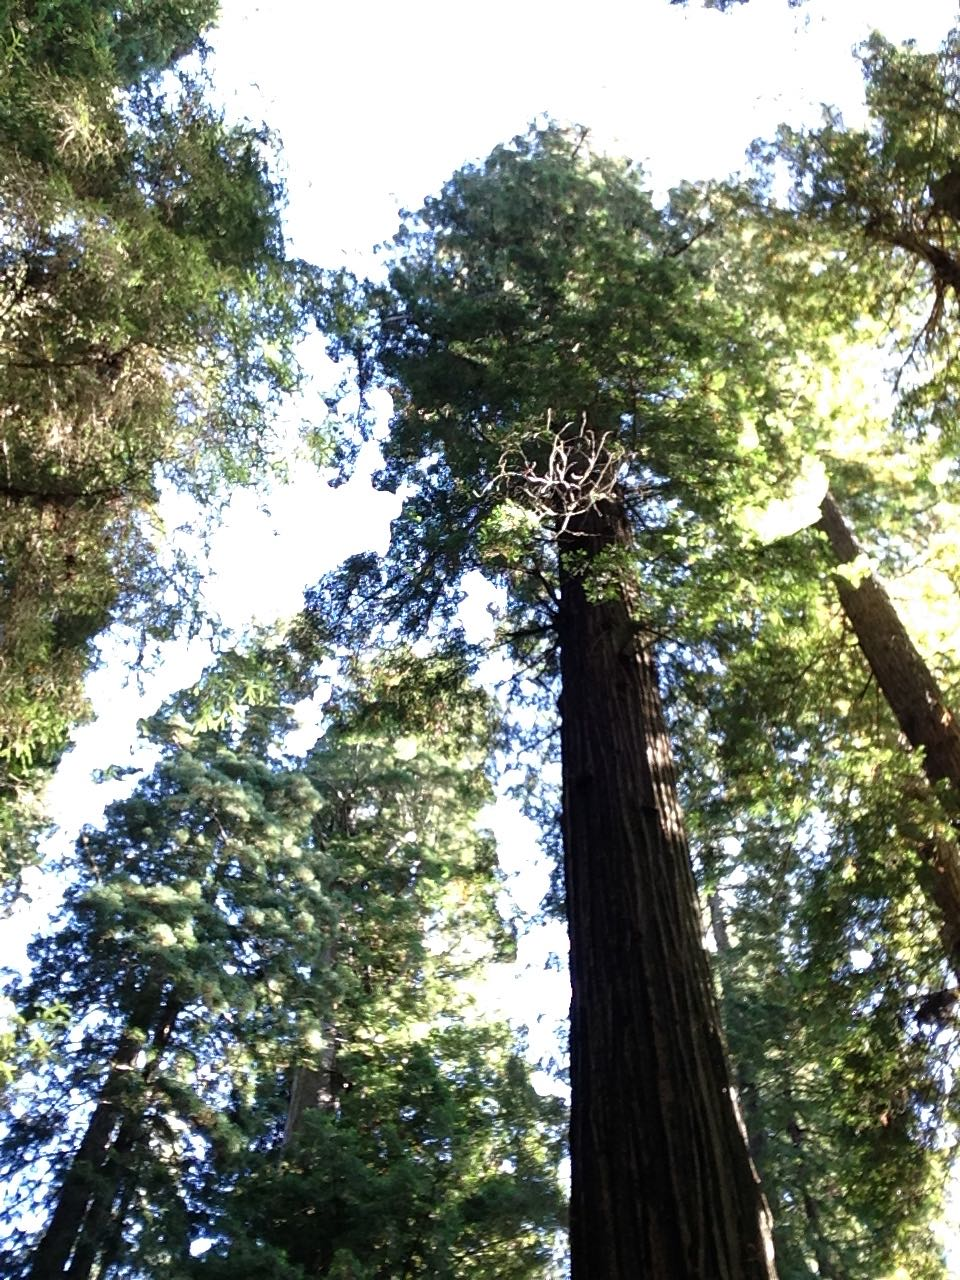 Redwoods 2017 10 08 253 Of 287